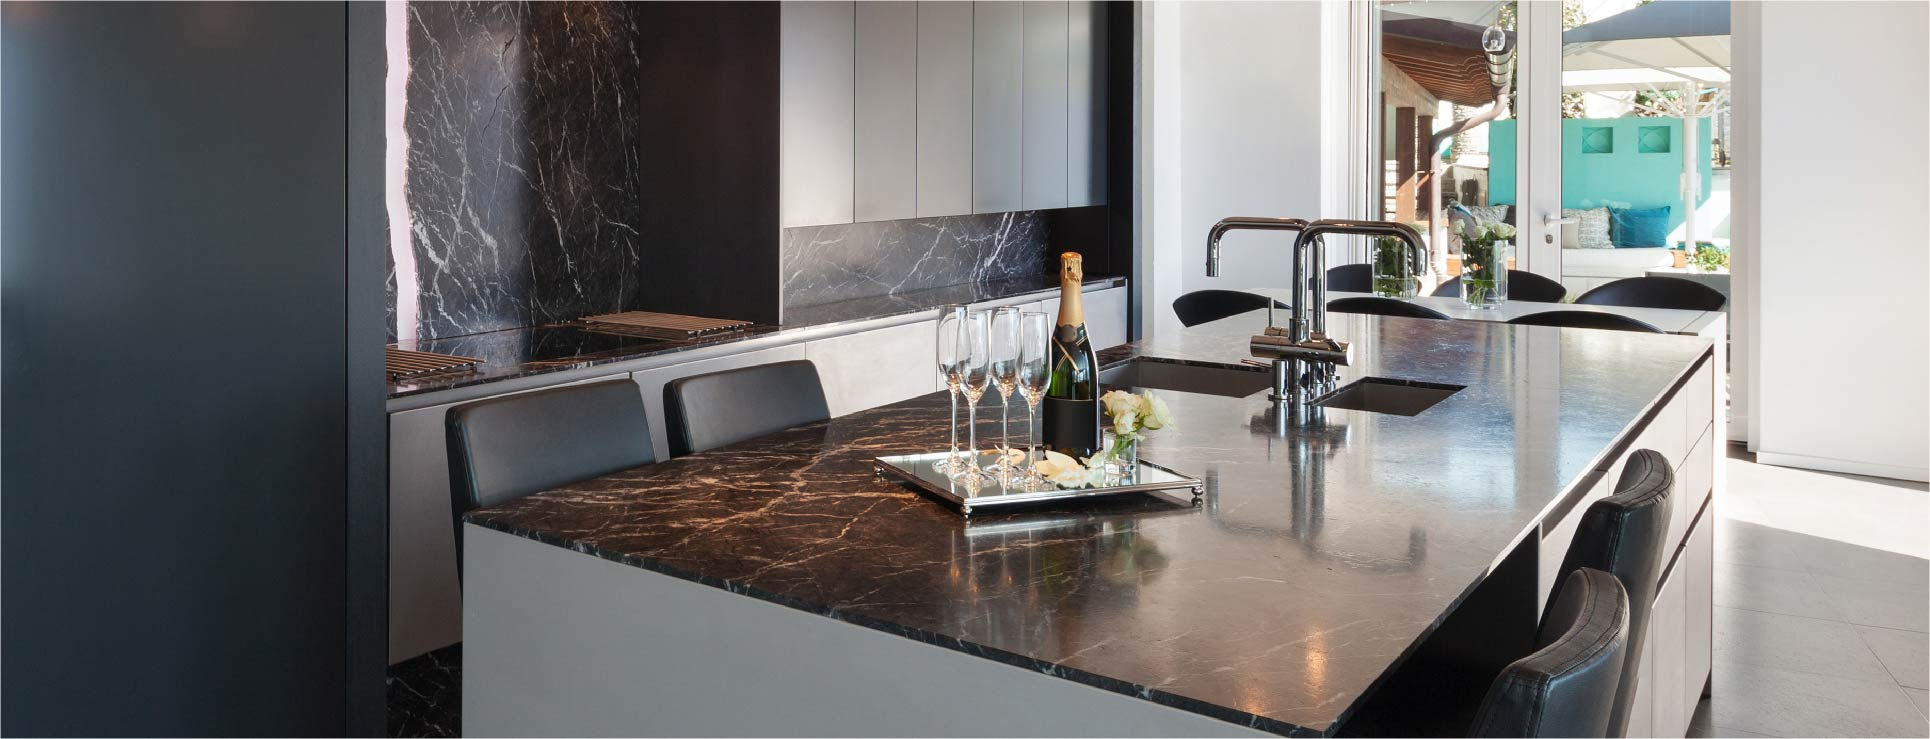 slide3 - Marble Countertops Make Life Better